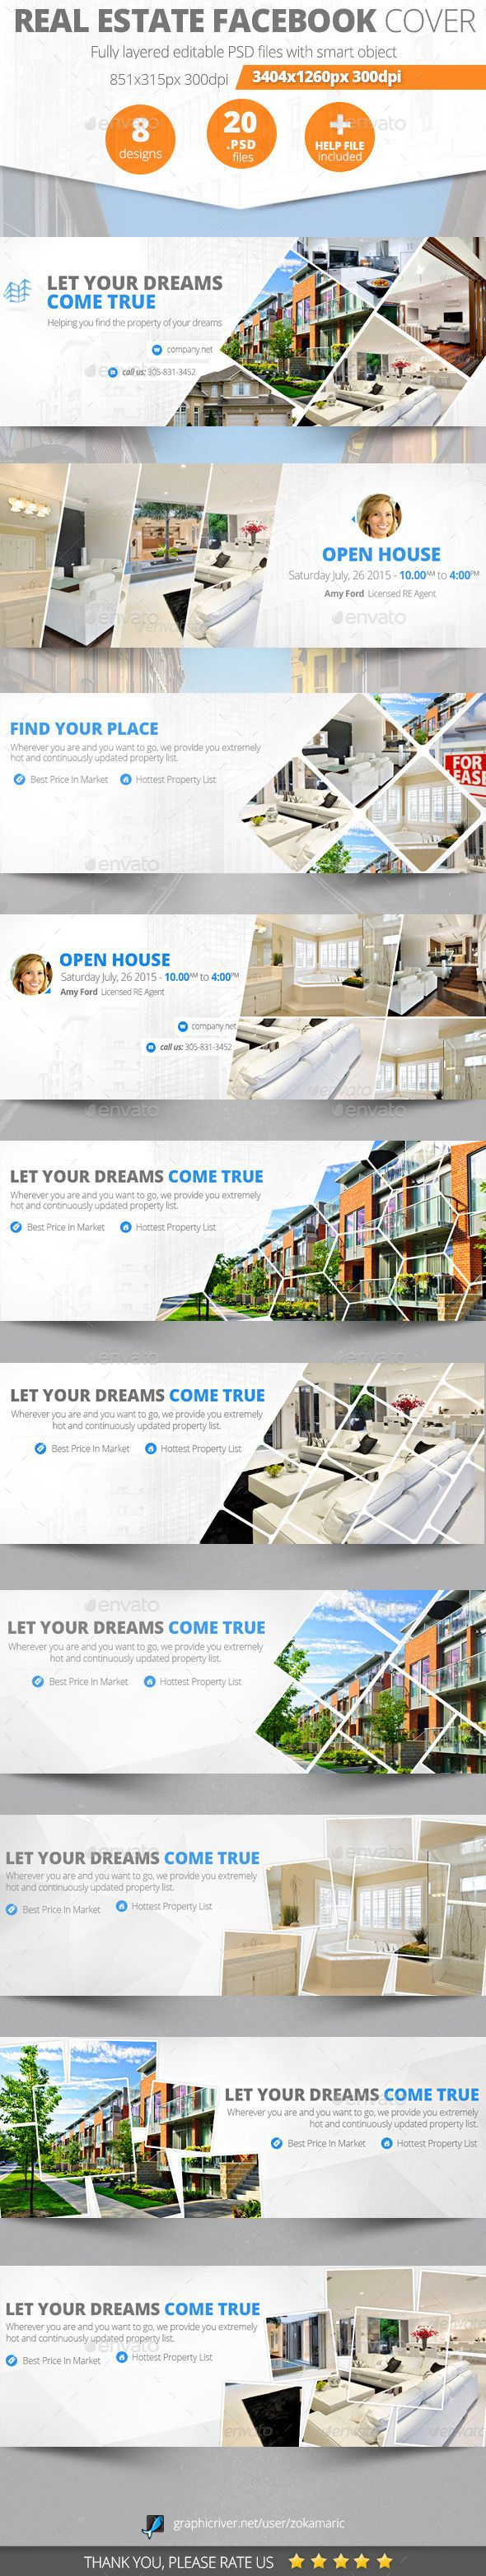 Real Estate Facebook Cover - Facebook Timeline Covers Social Media